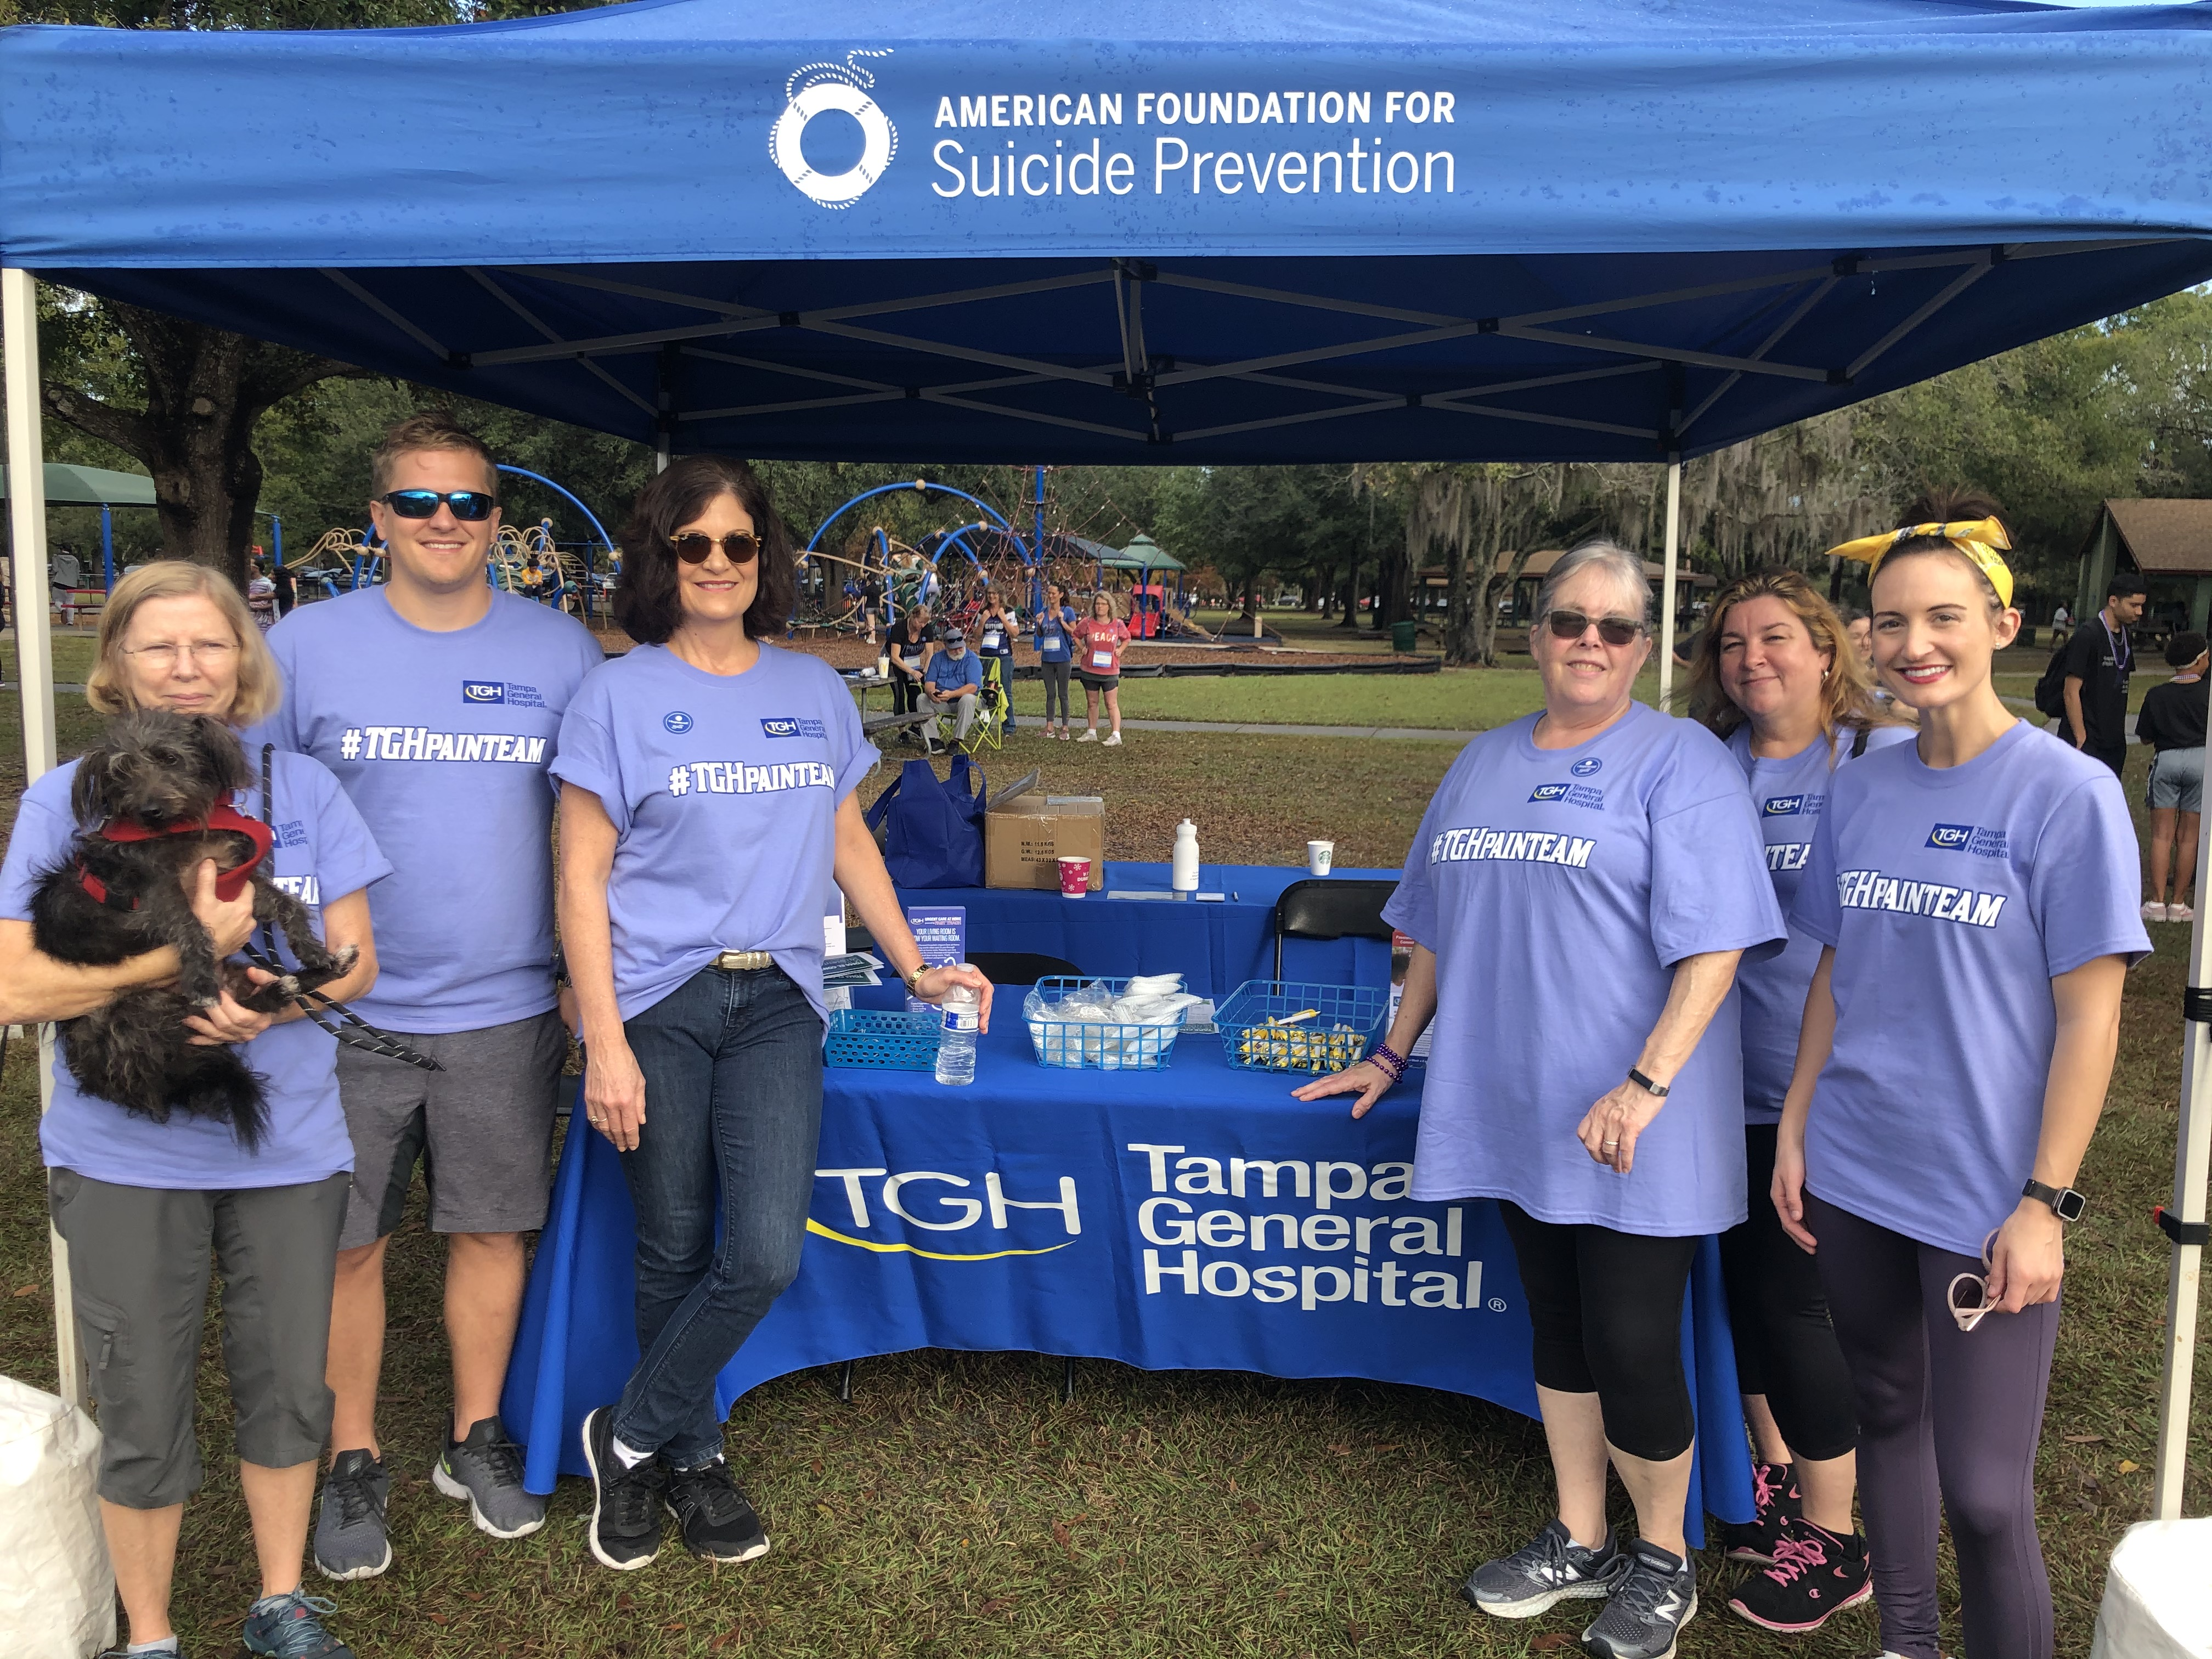 12/14/19 Out of the Darkness Suicide Prevention Walk supporting American Foundation for Suicide Prevention